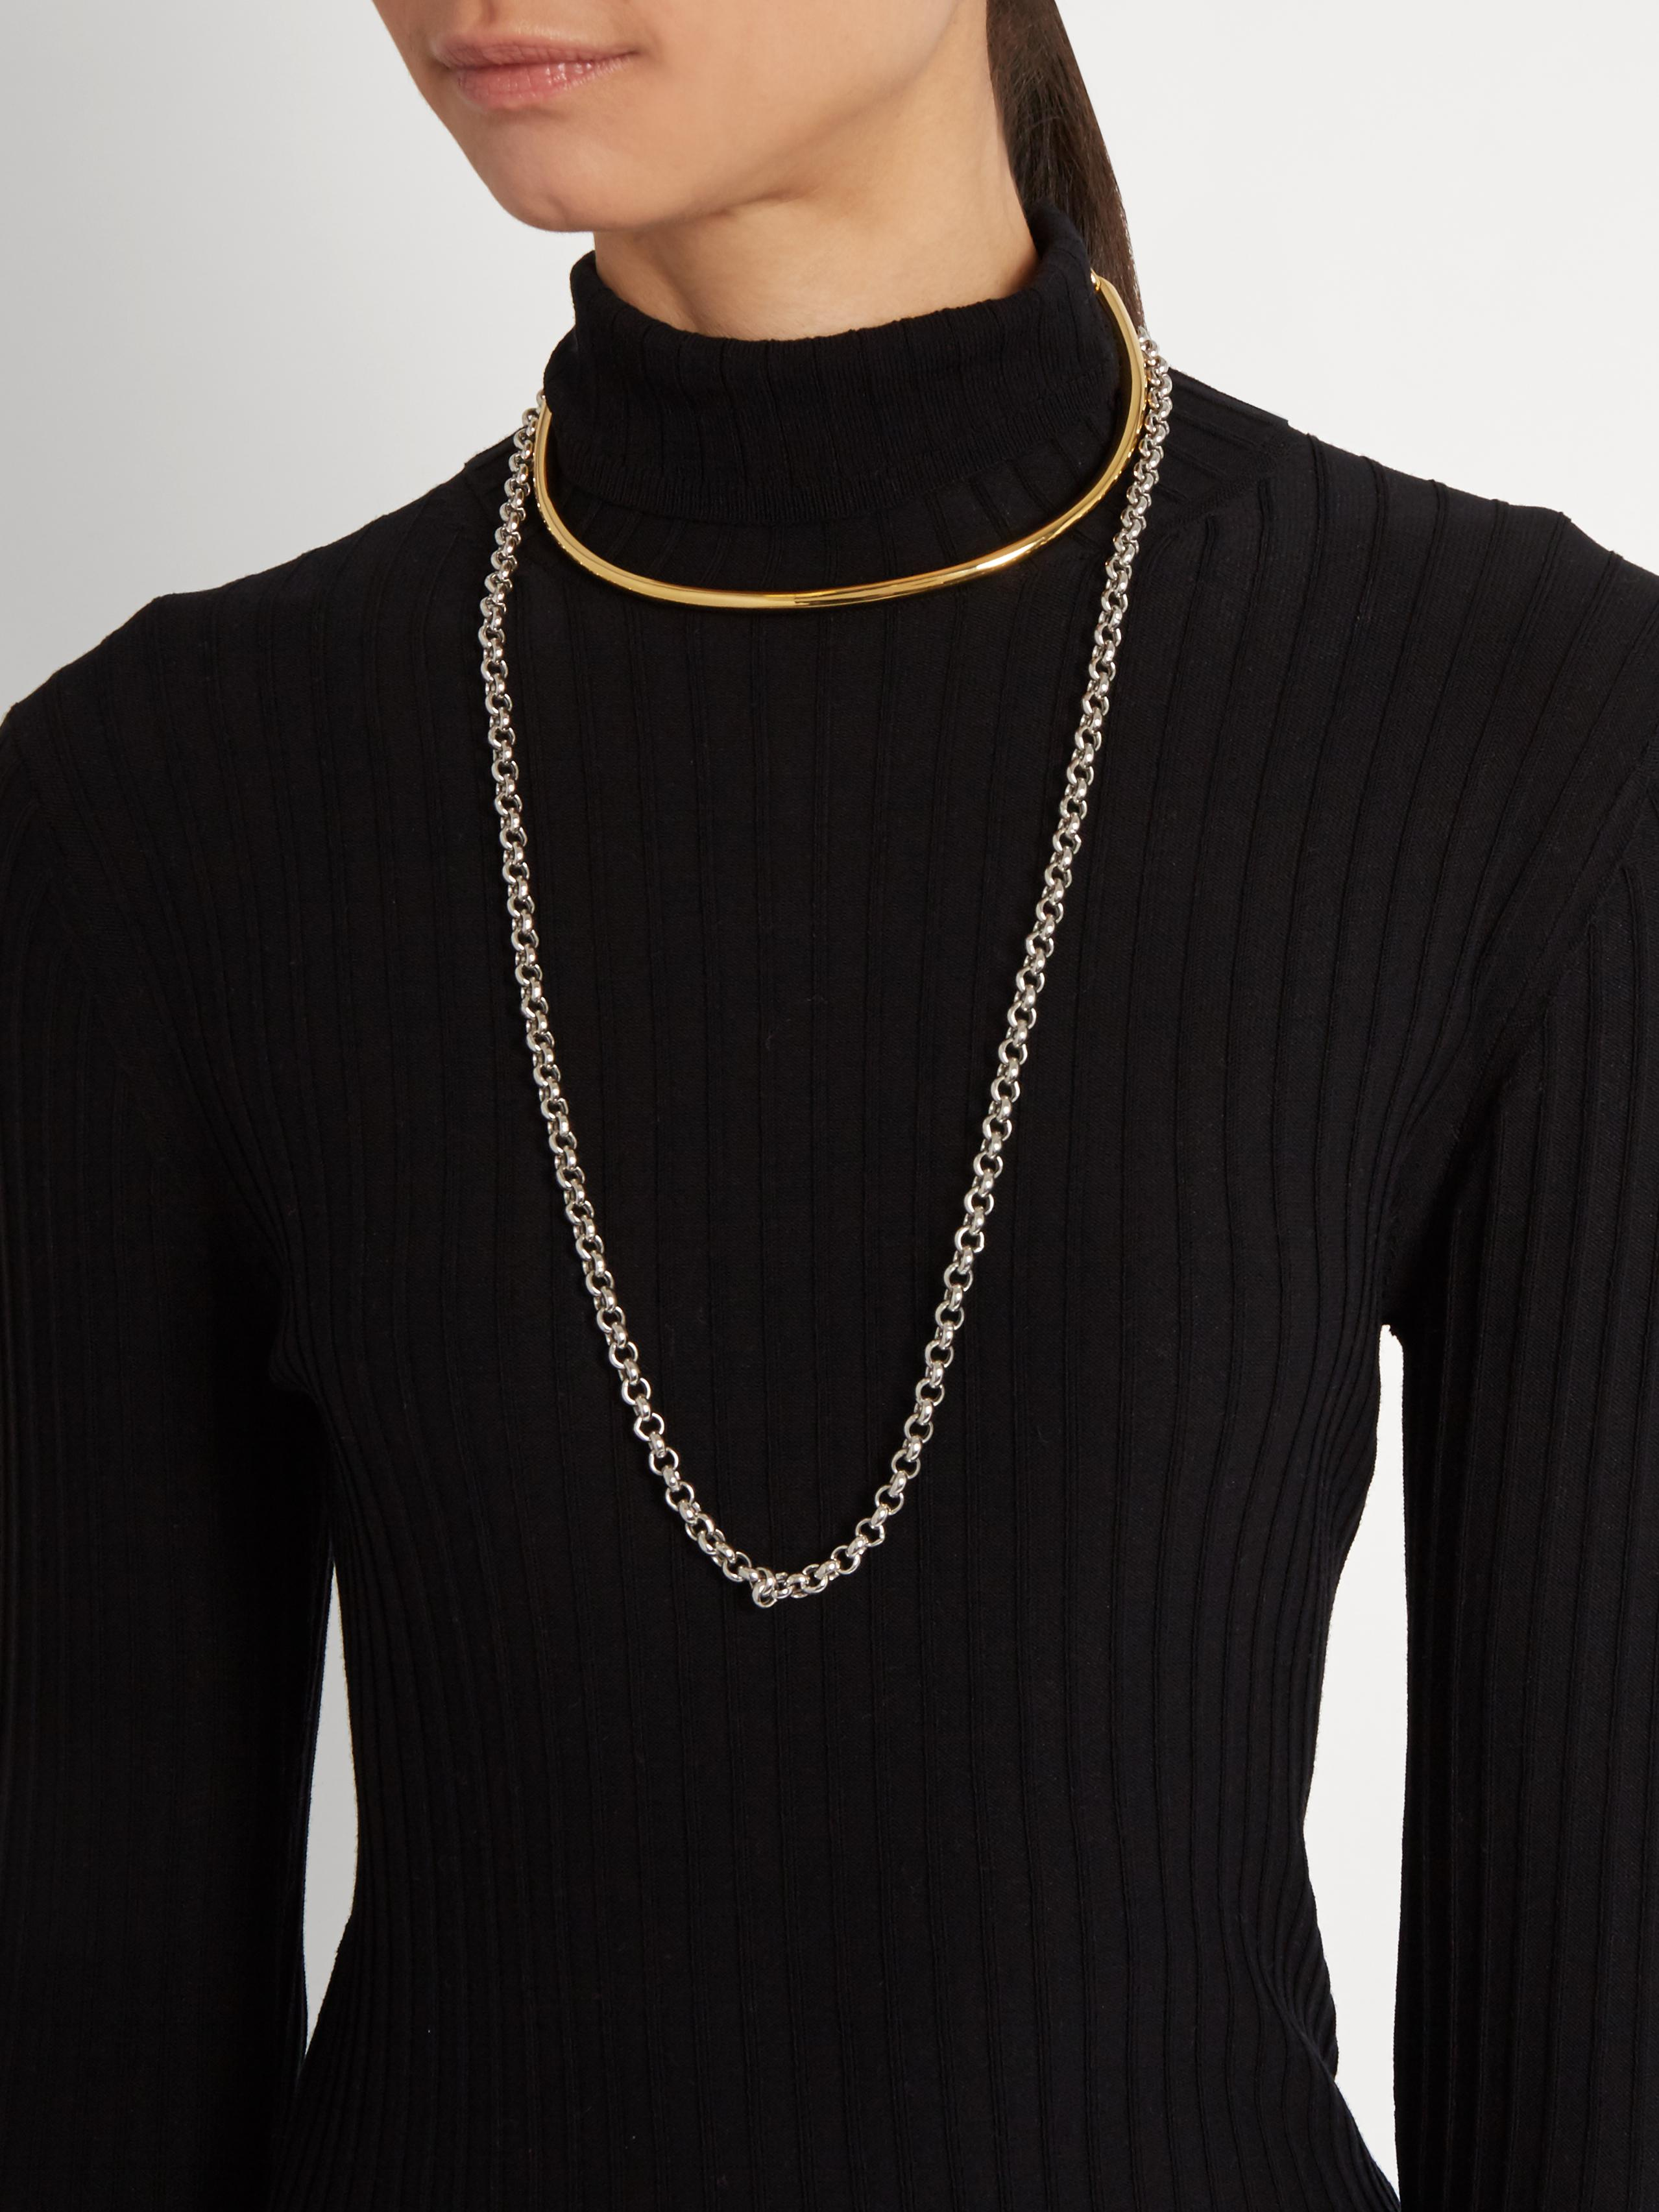 Charlotte Chesnais Briska necklace - Metallic B7IMa